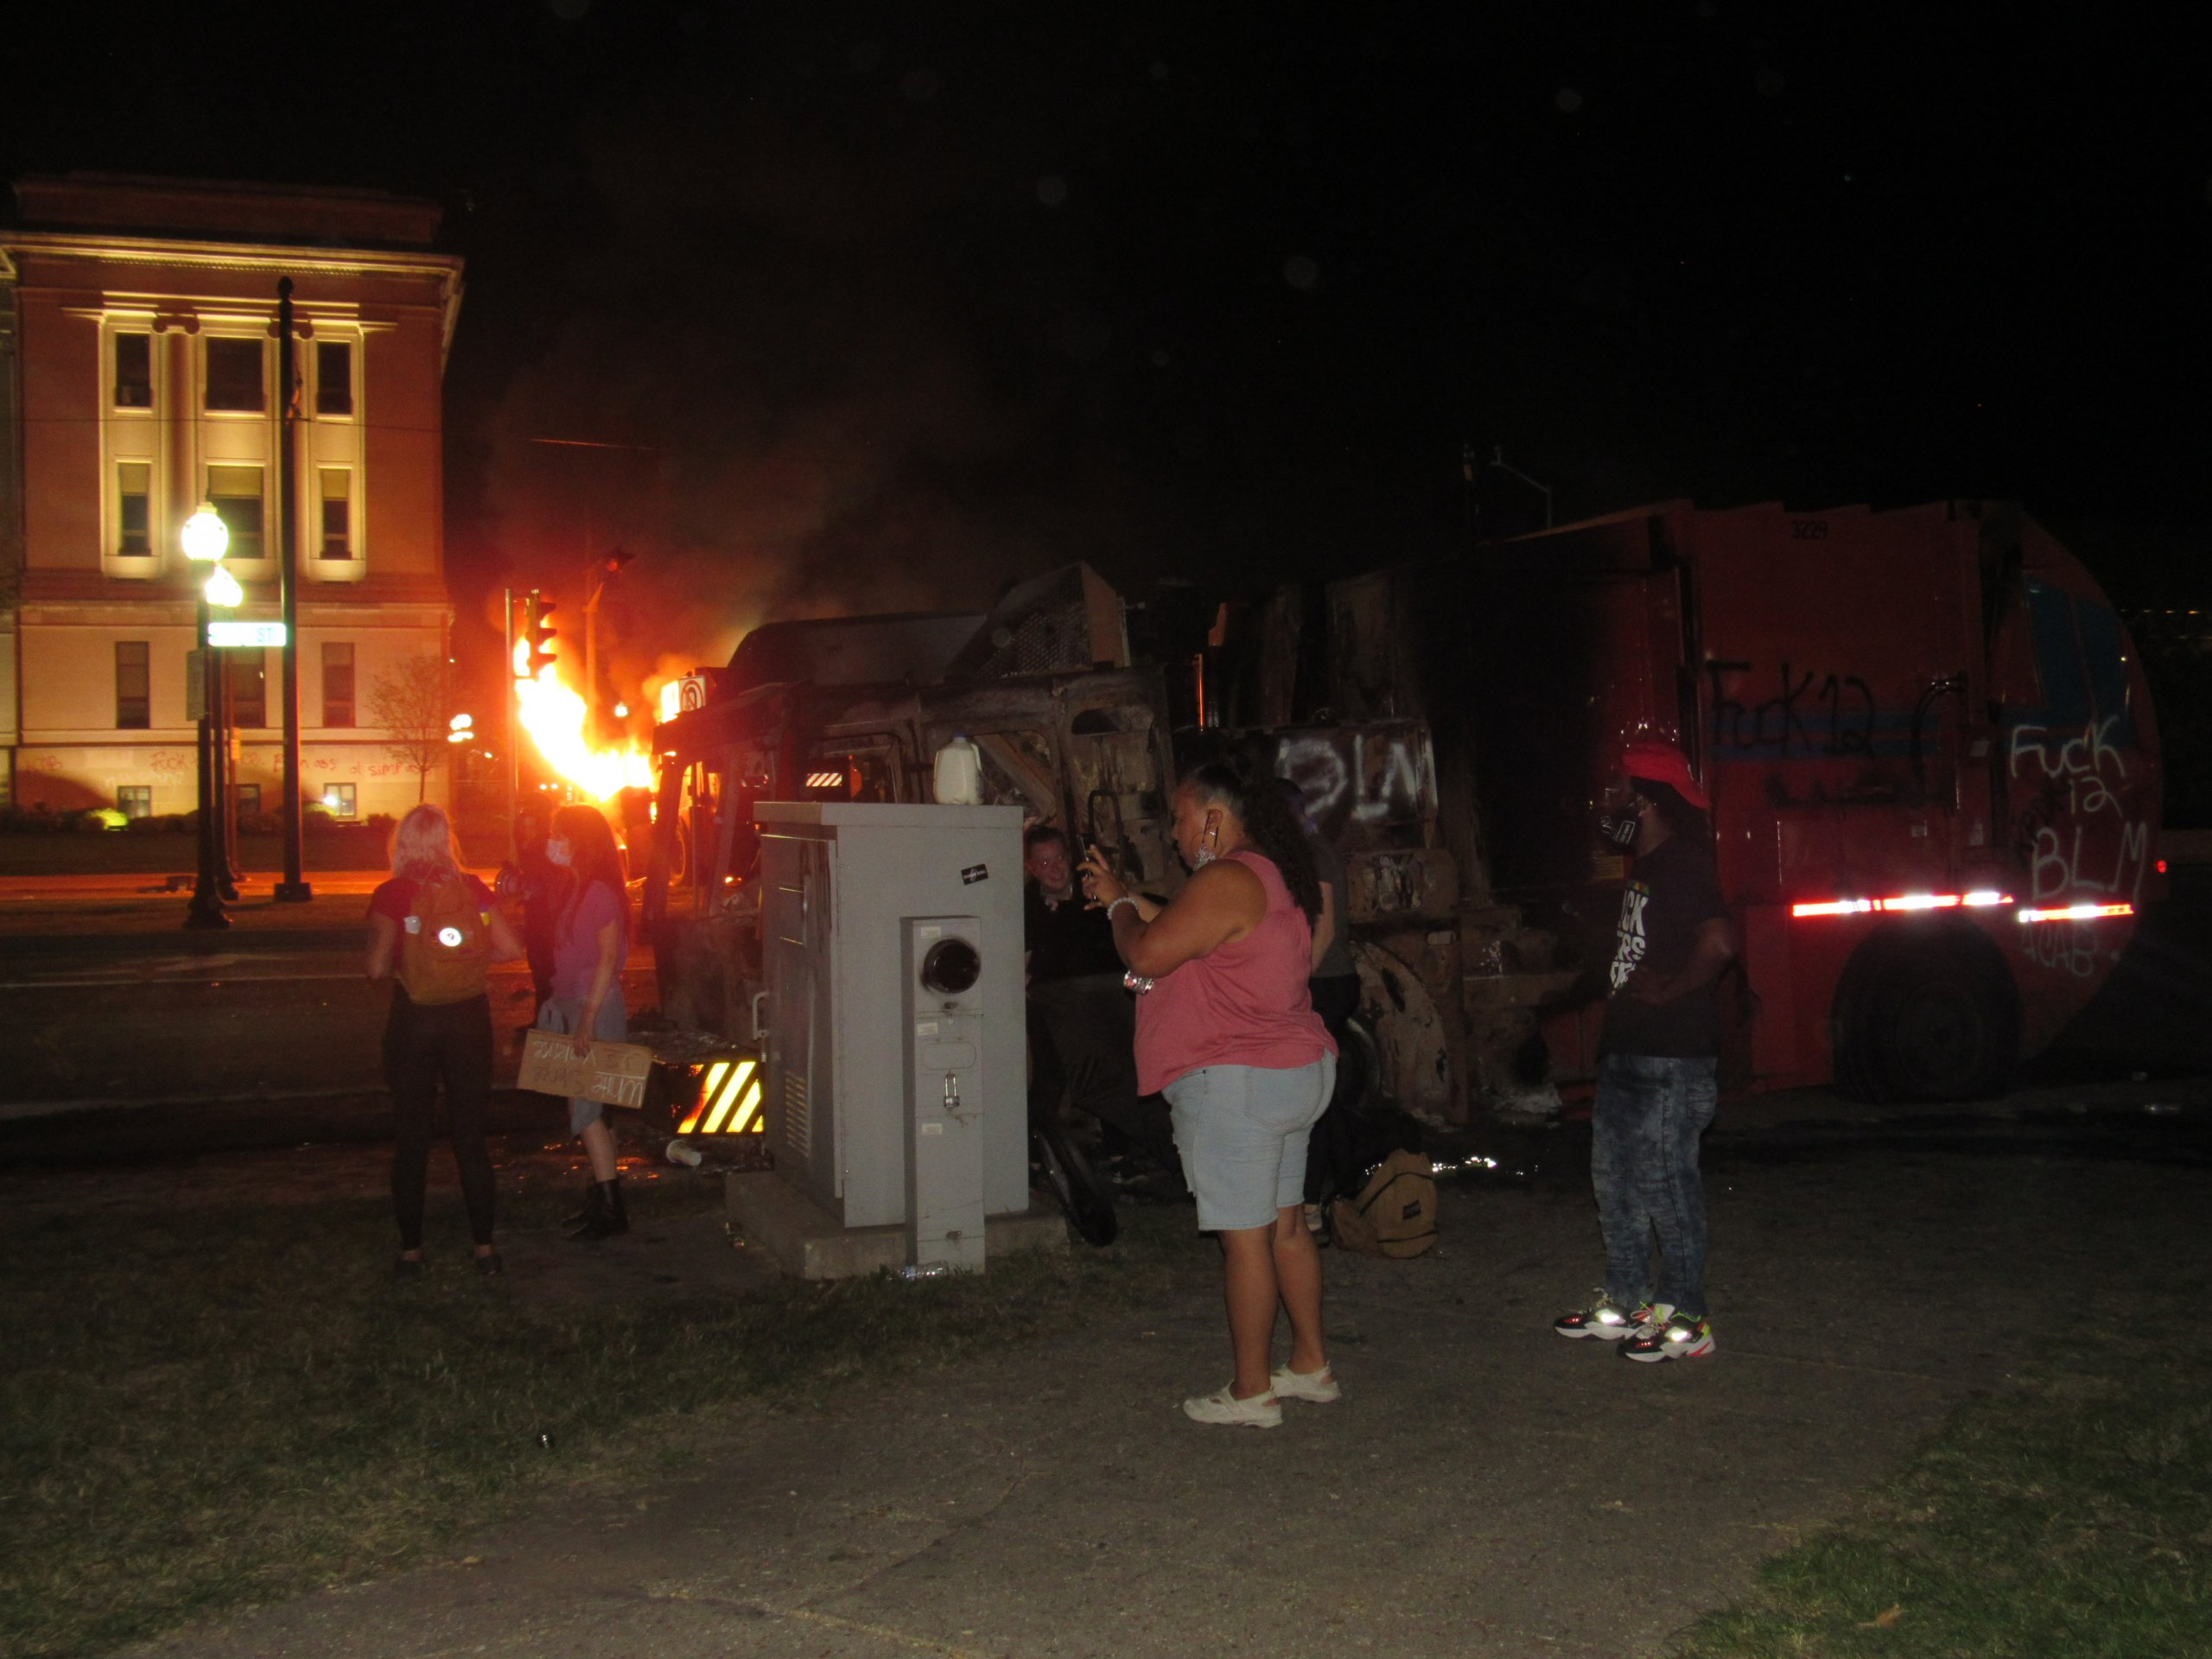 People look on as protesters clash with police, and vehicles burned around them. (Photo by Isiah Holmes)